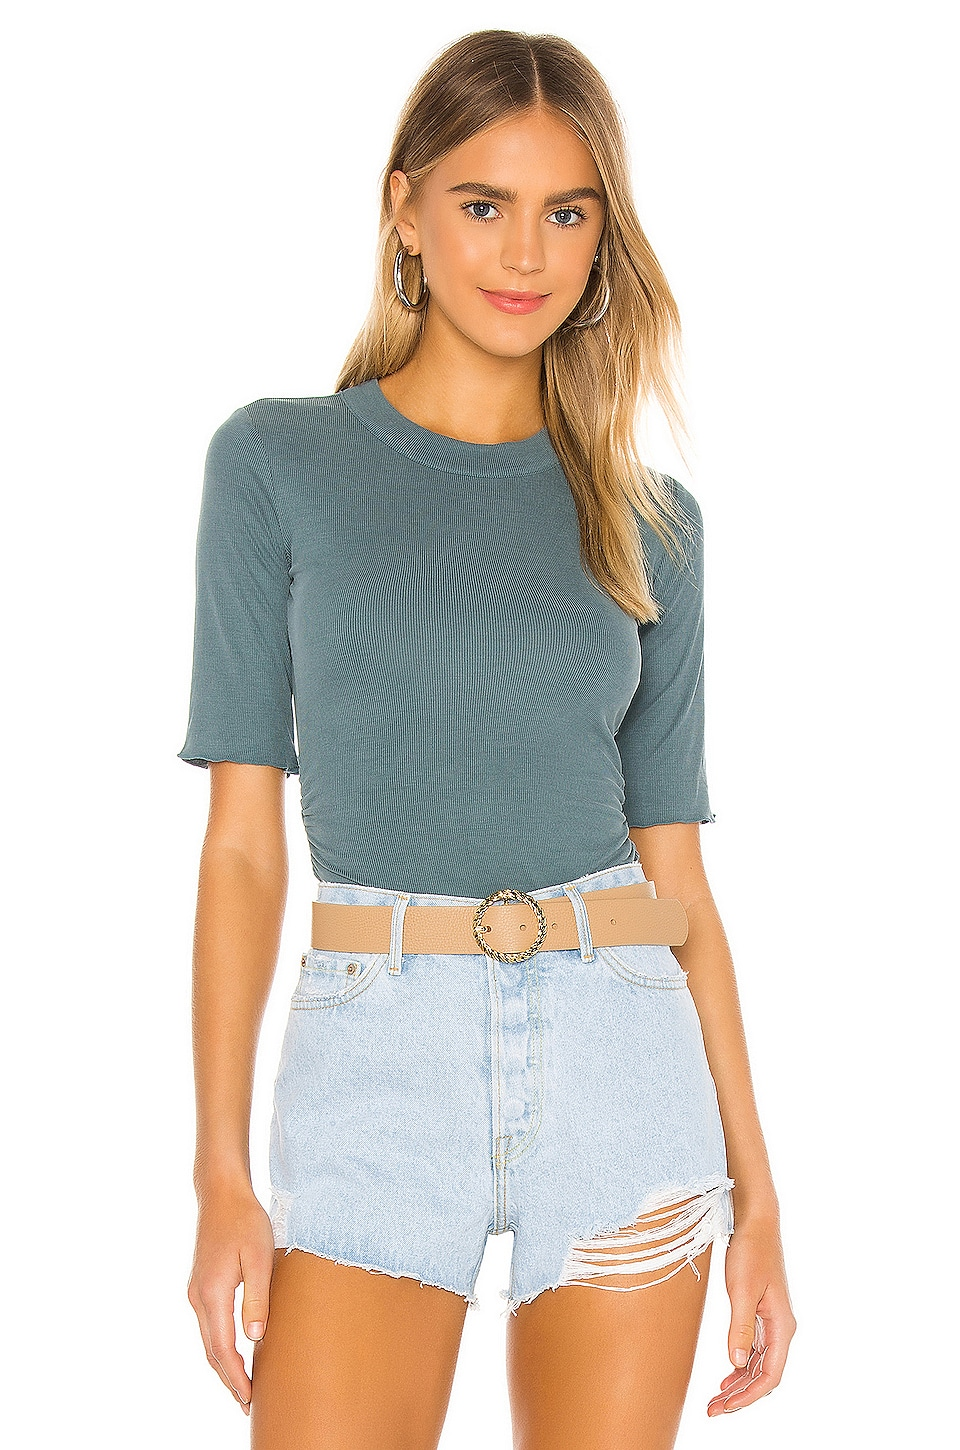 Talk To Me Tee             Free People                                                                                                       CA$ 42.13 6